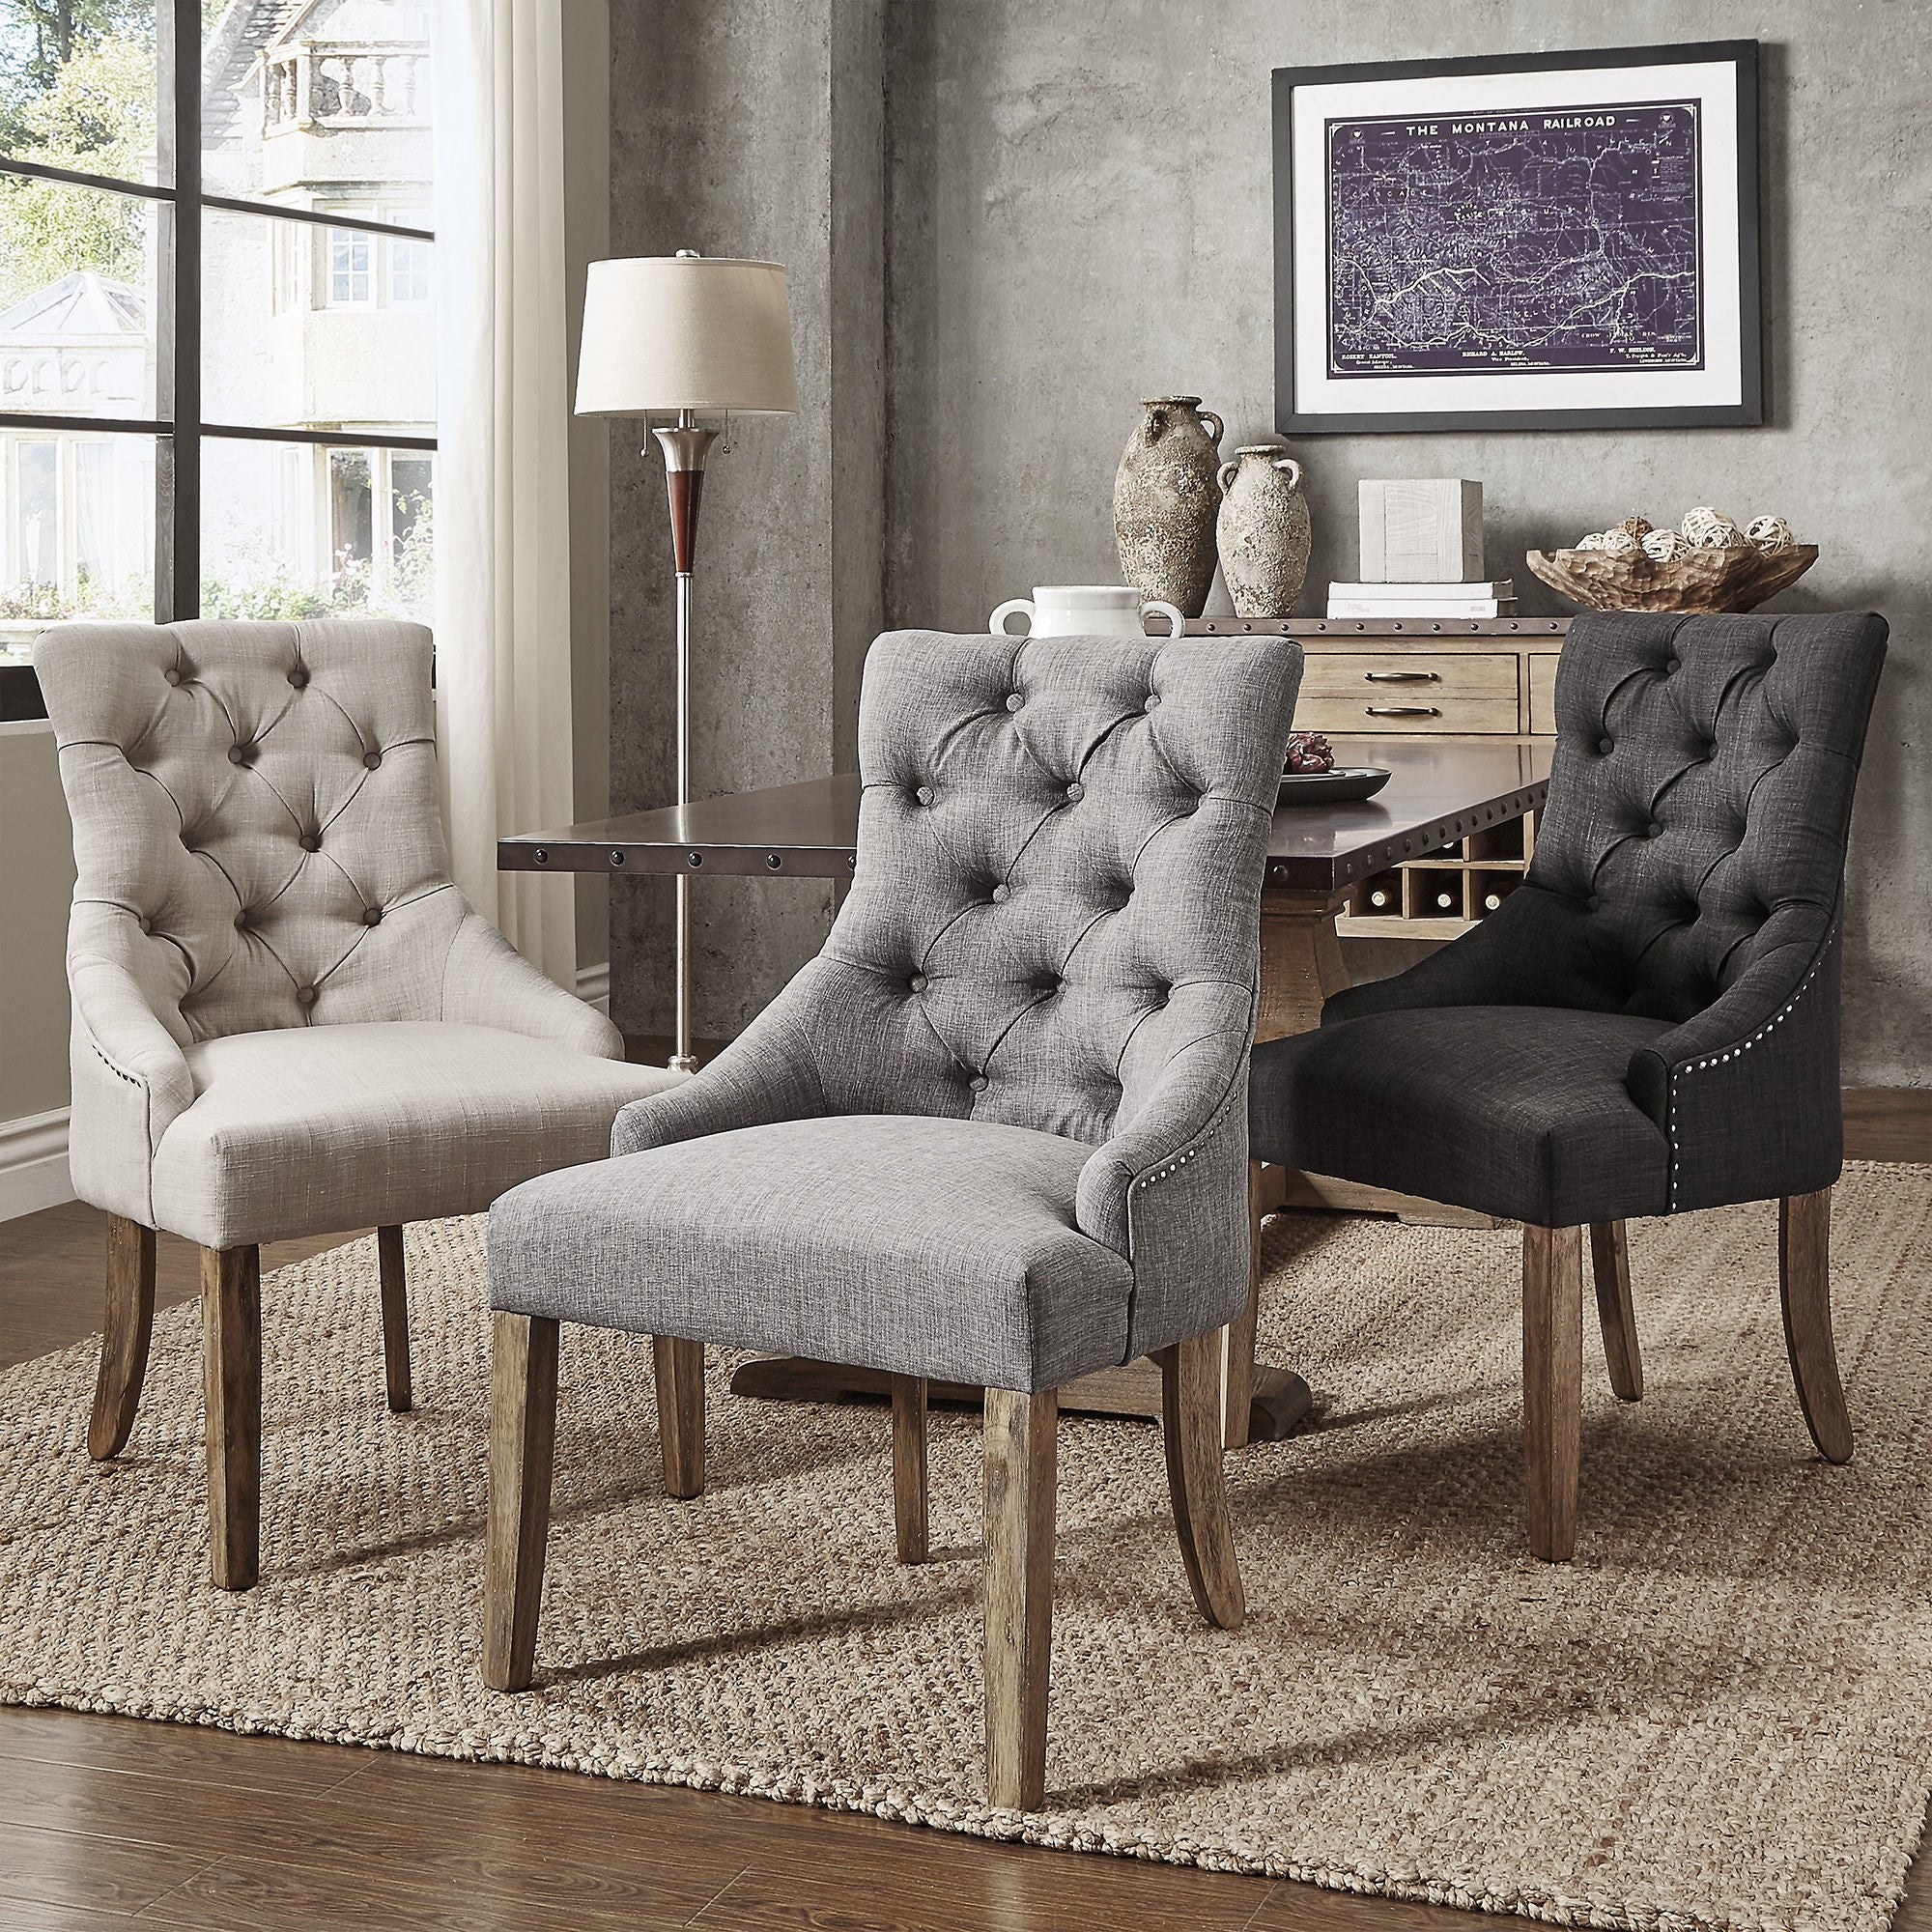 buy accent chairs living room chairs online at overstock our best rh overstock com living room accent chairs canada living room accent chairs ideas